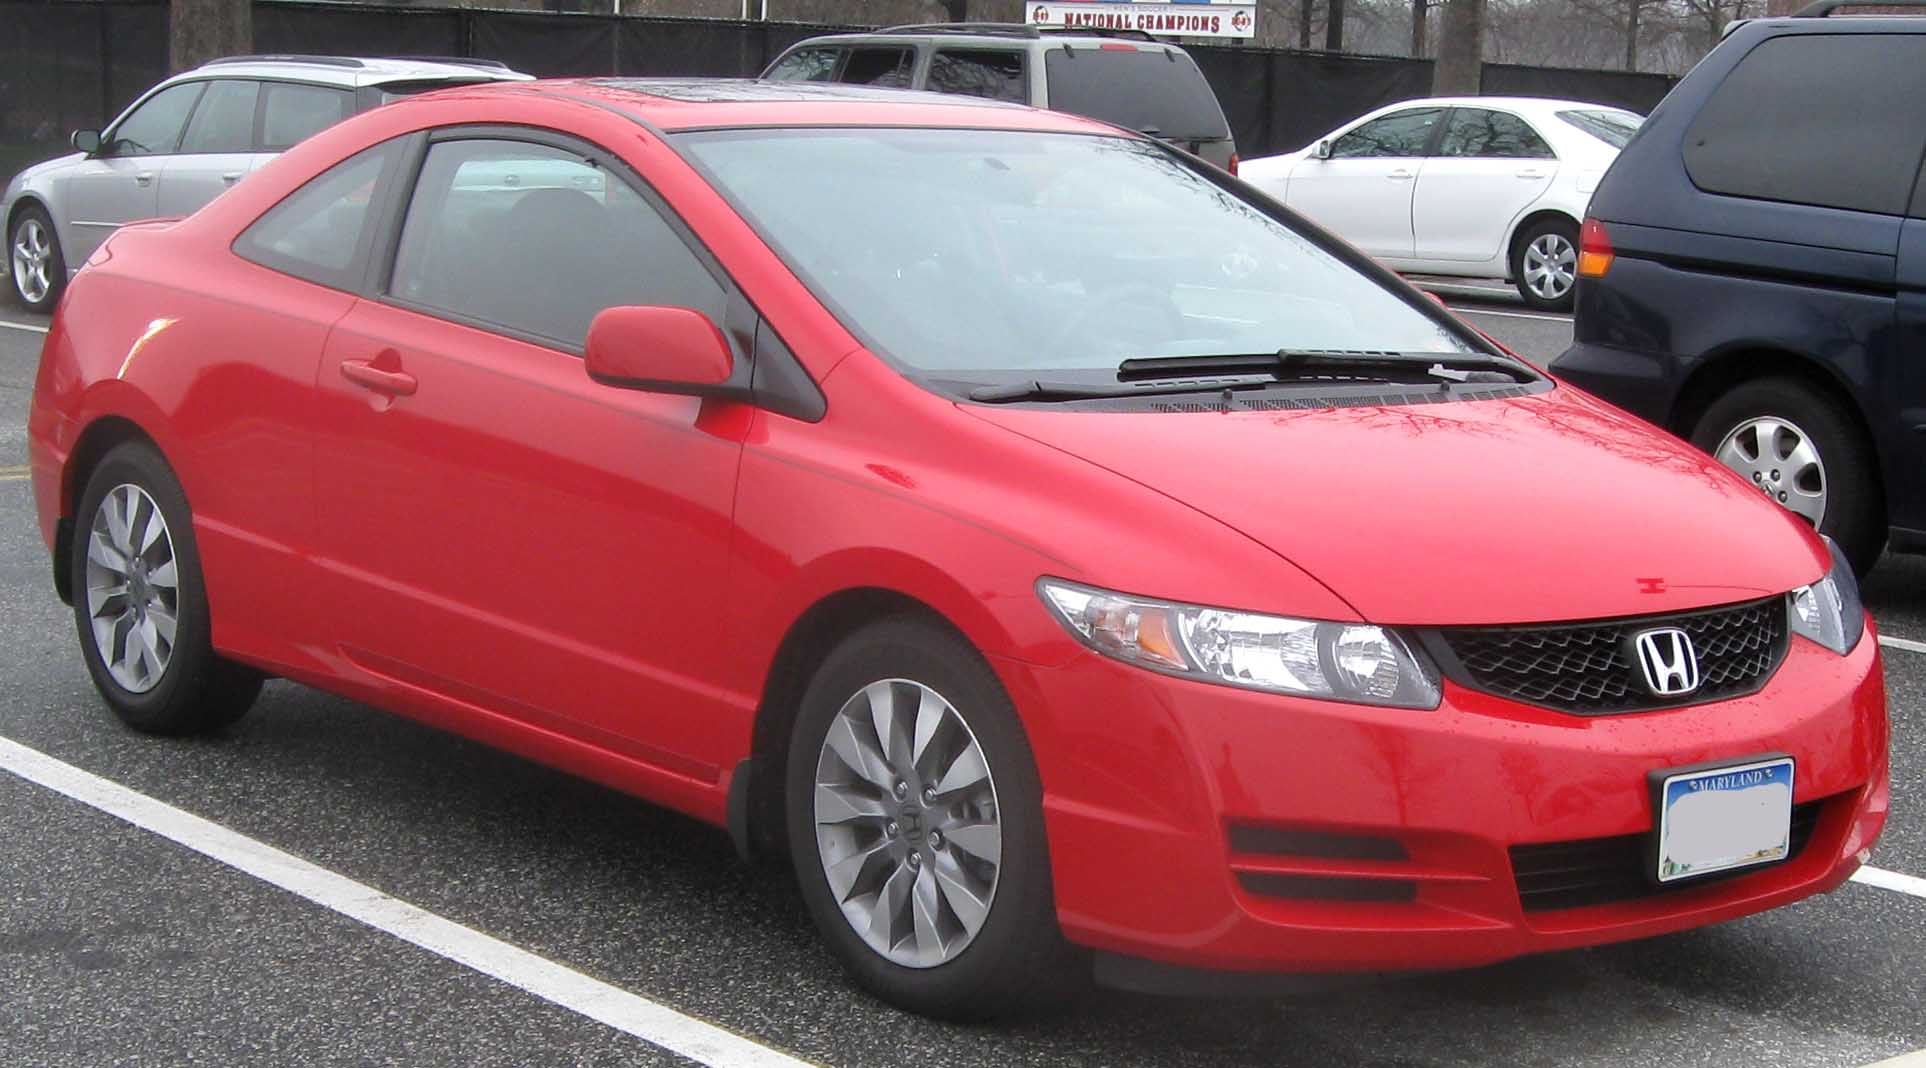 File:09 Honda Civic EX Coupe